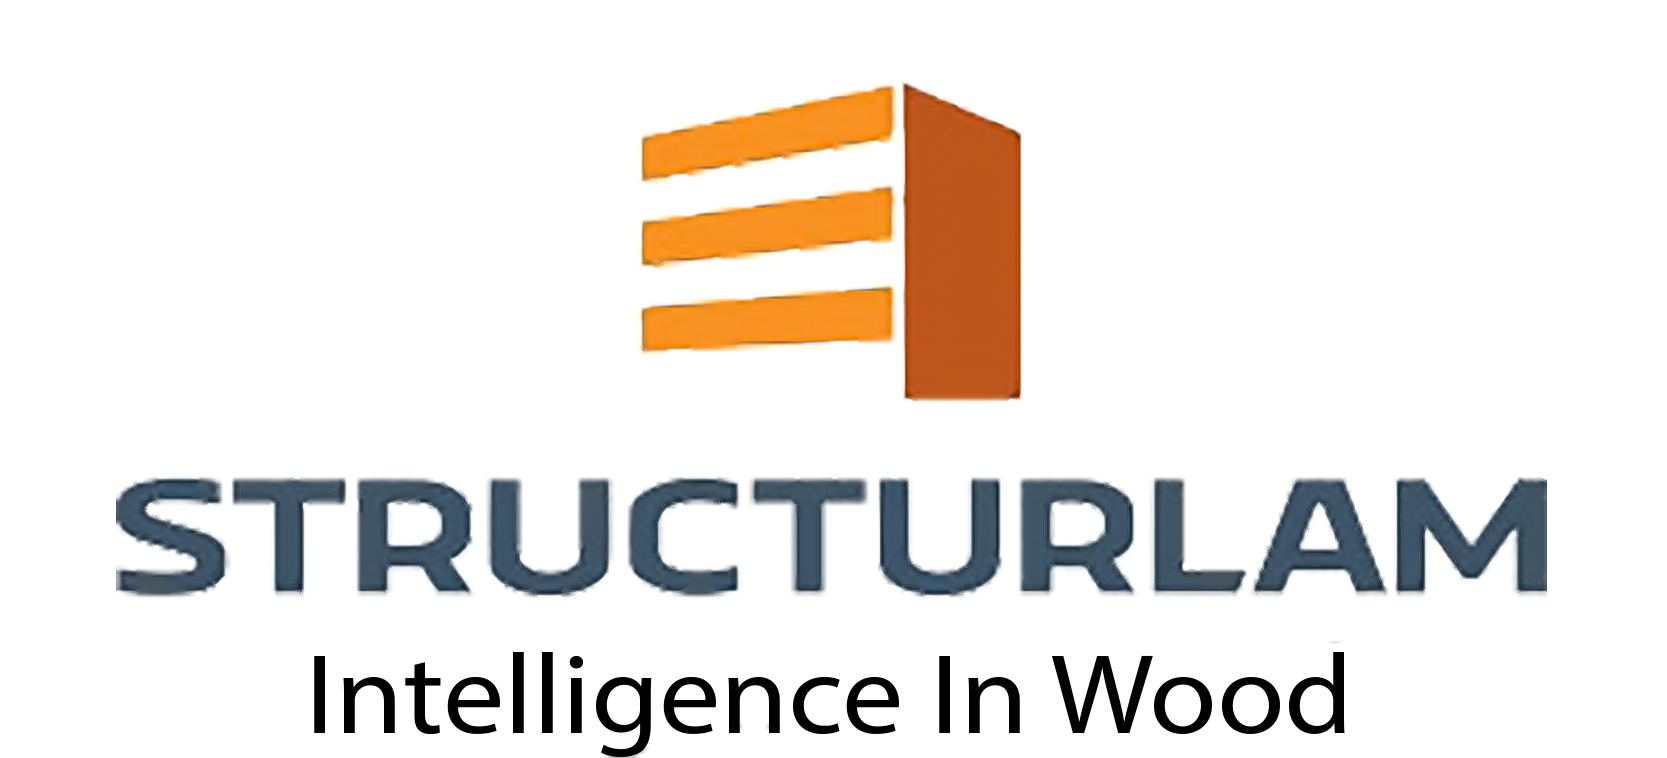 Structurlam Is First Canadian Cross Laminated Timber Manufacturer To